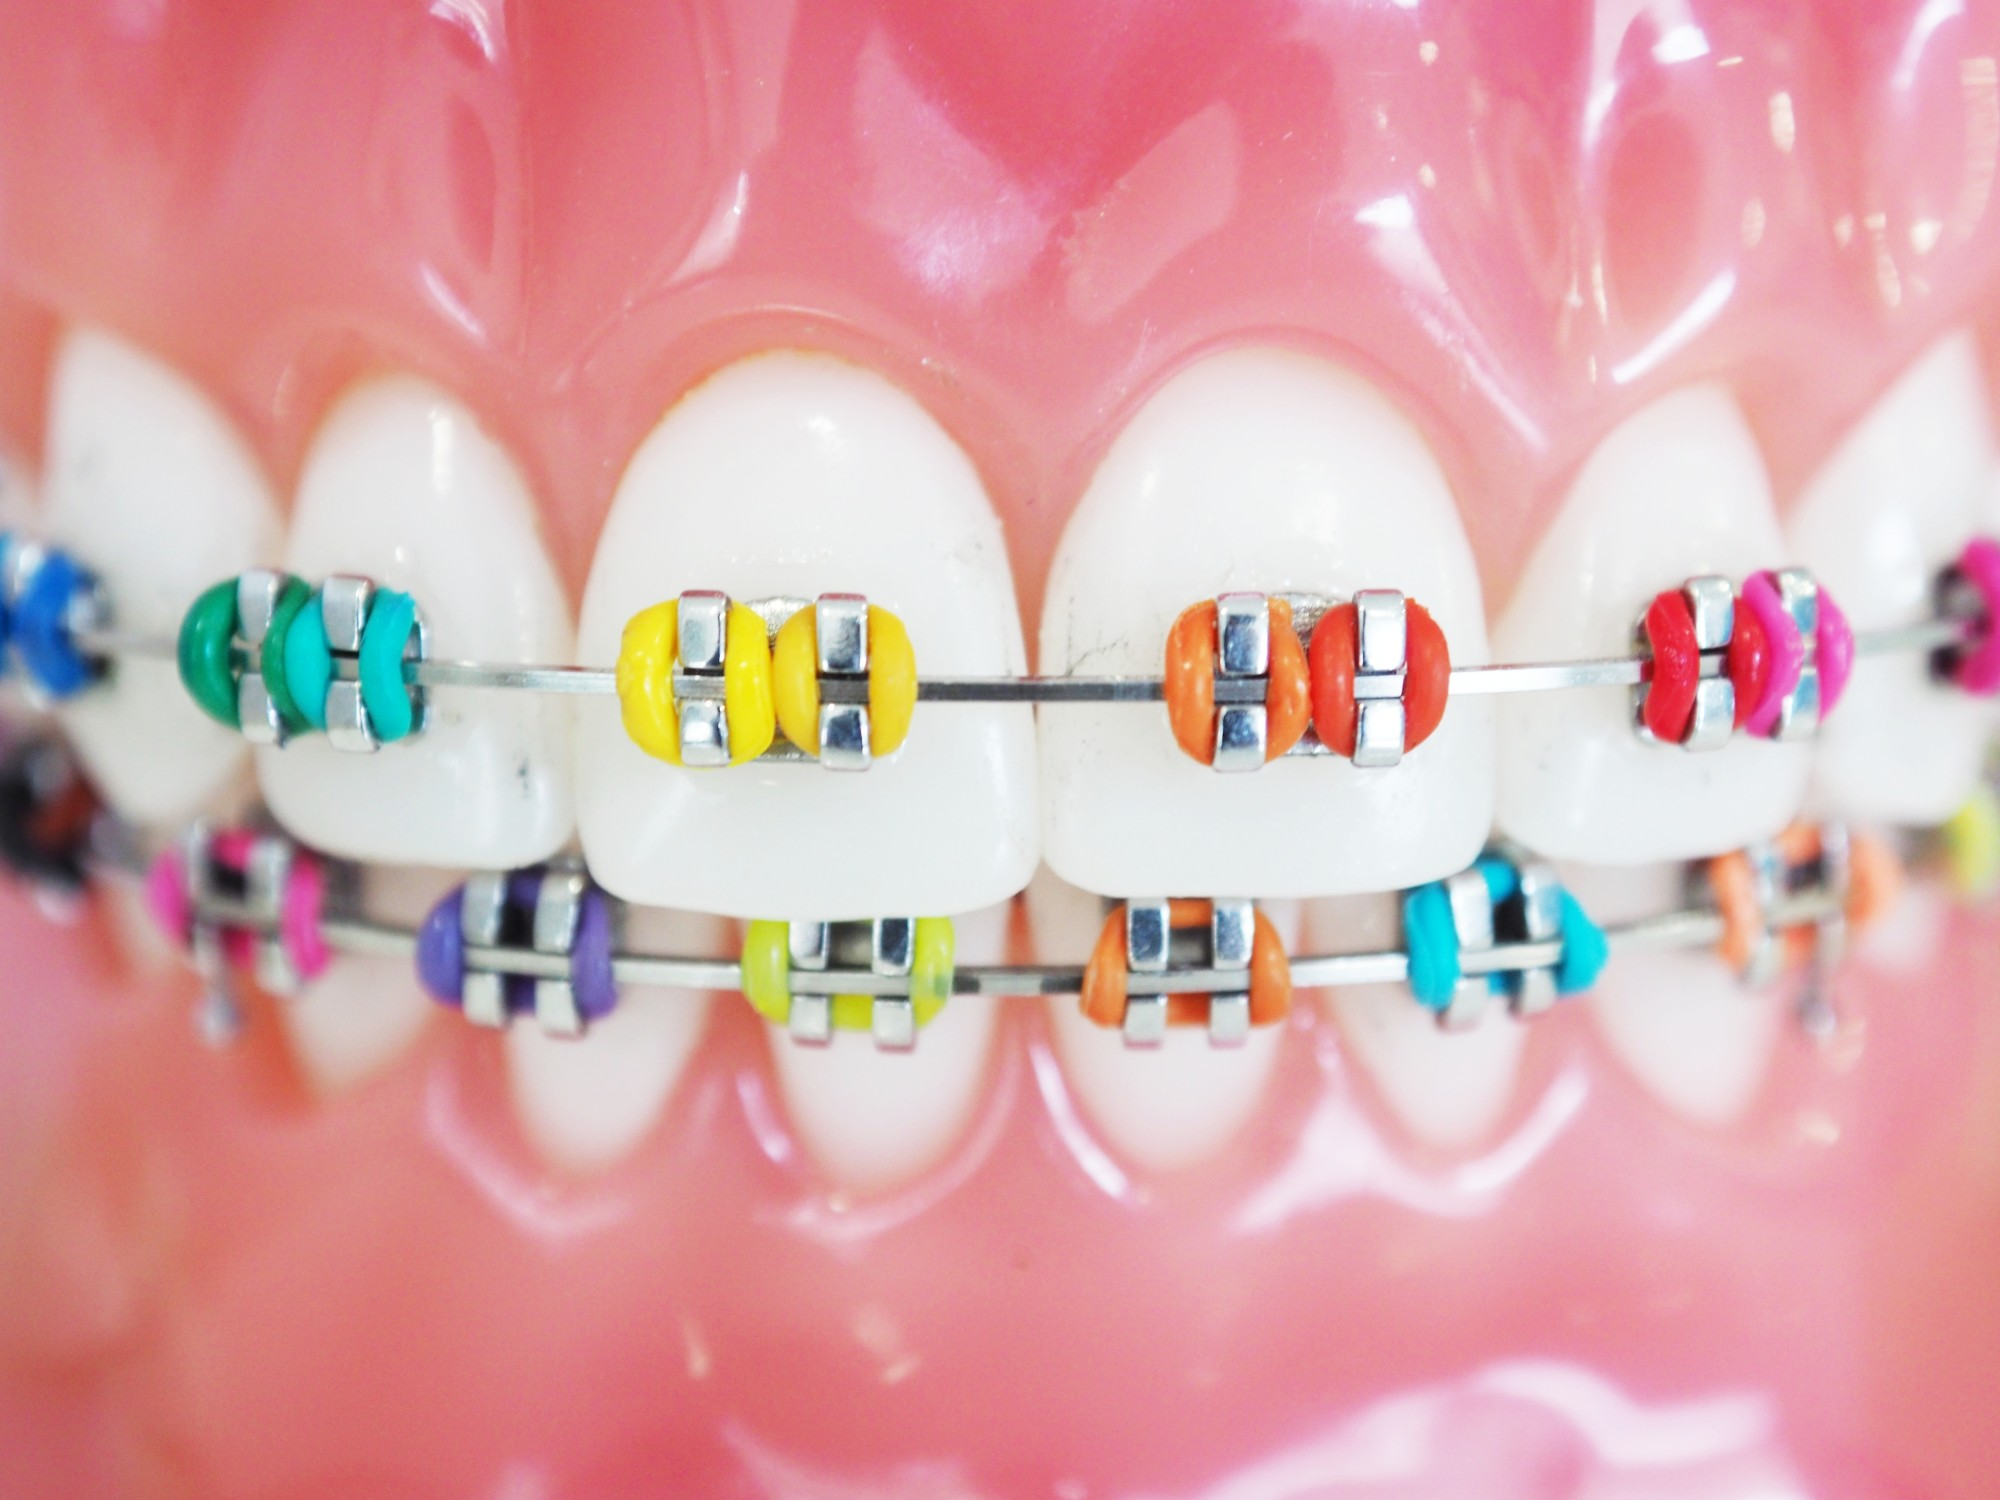 Braces with color bands